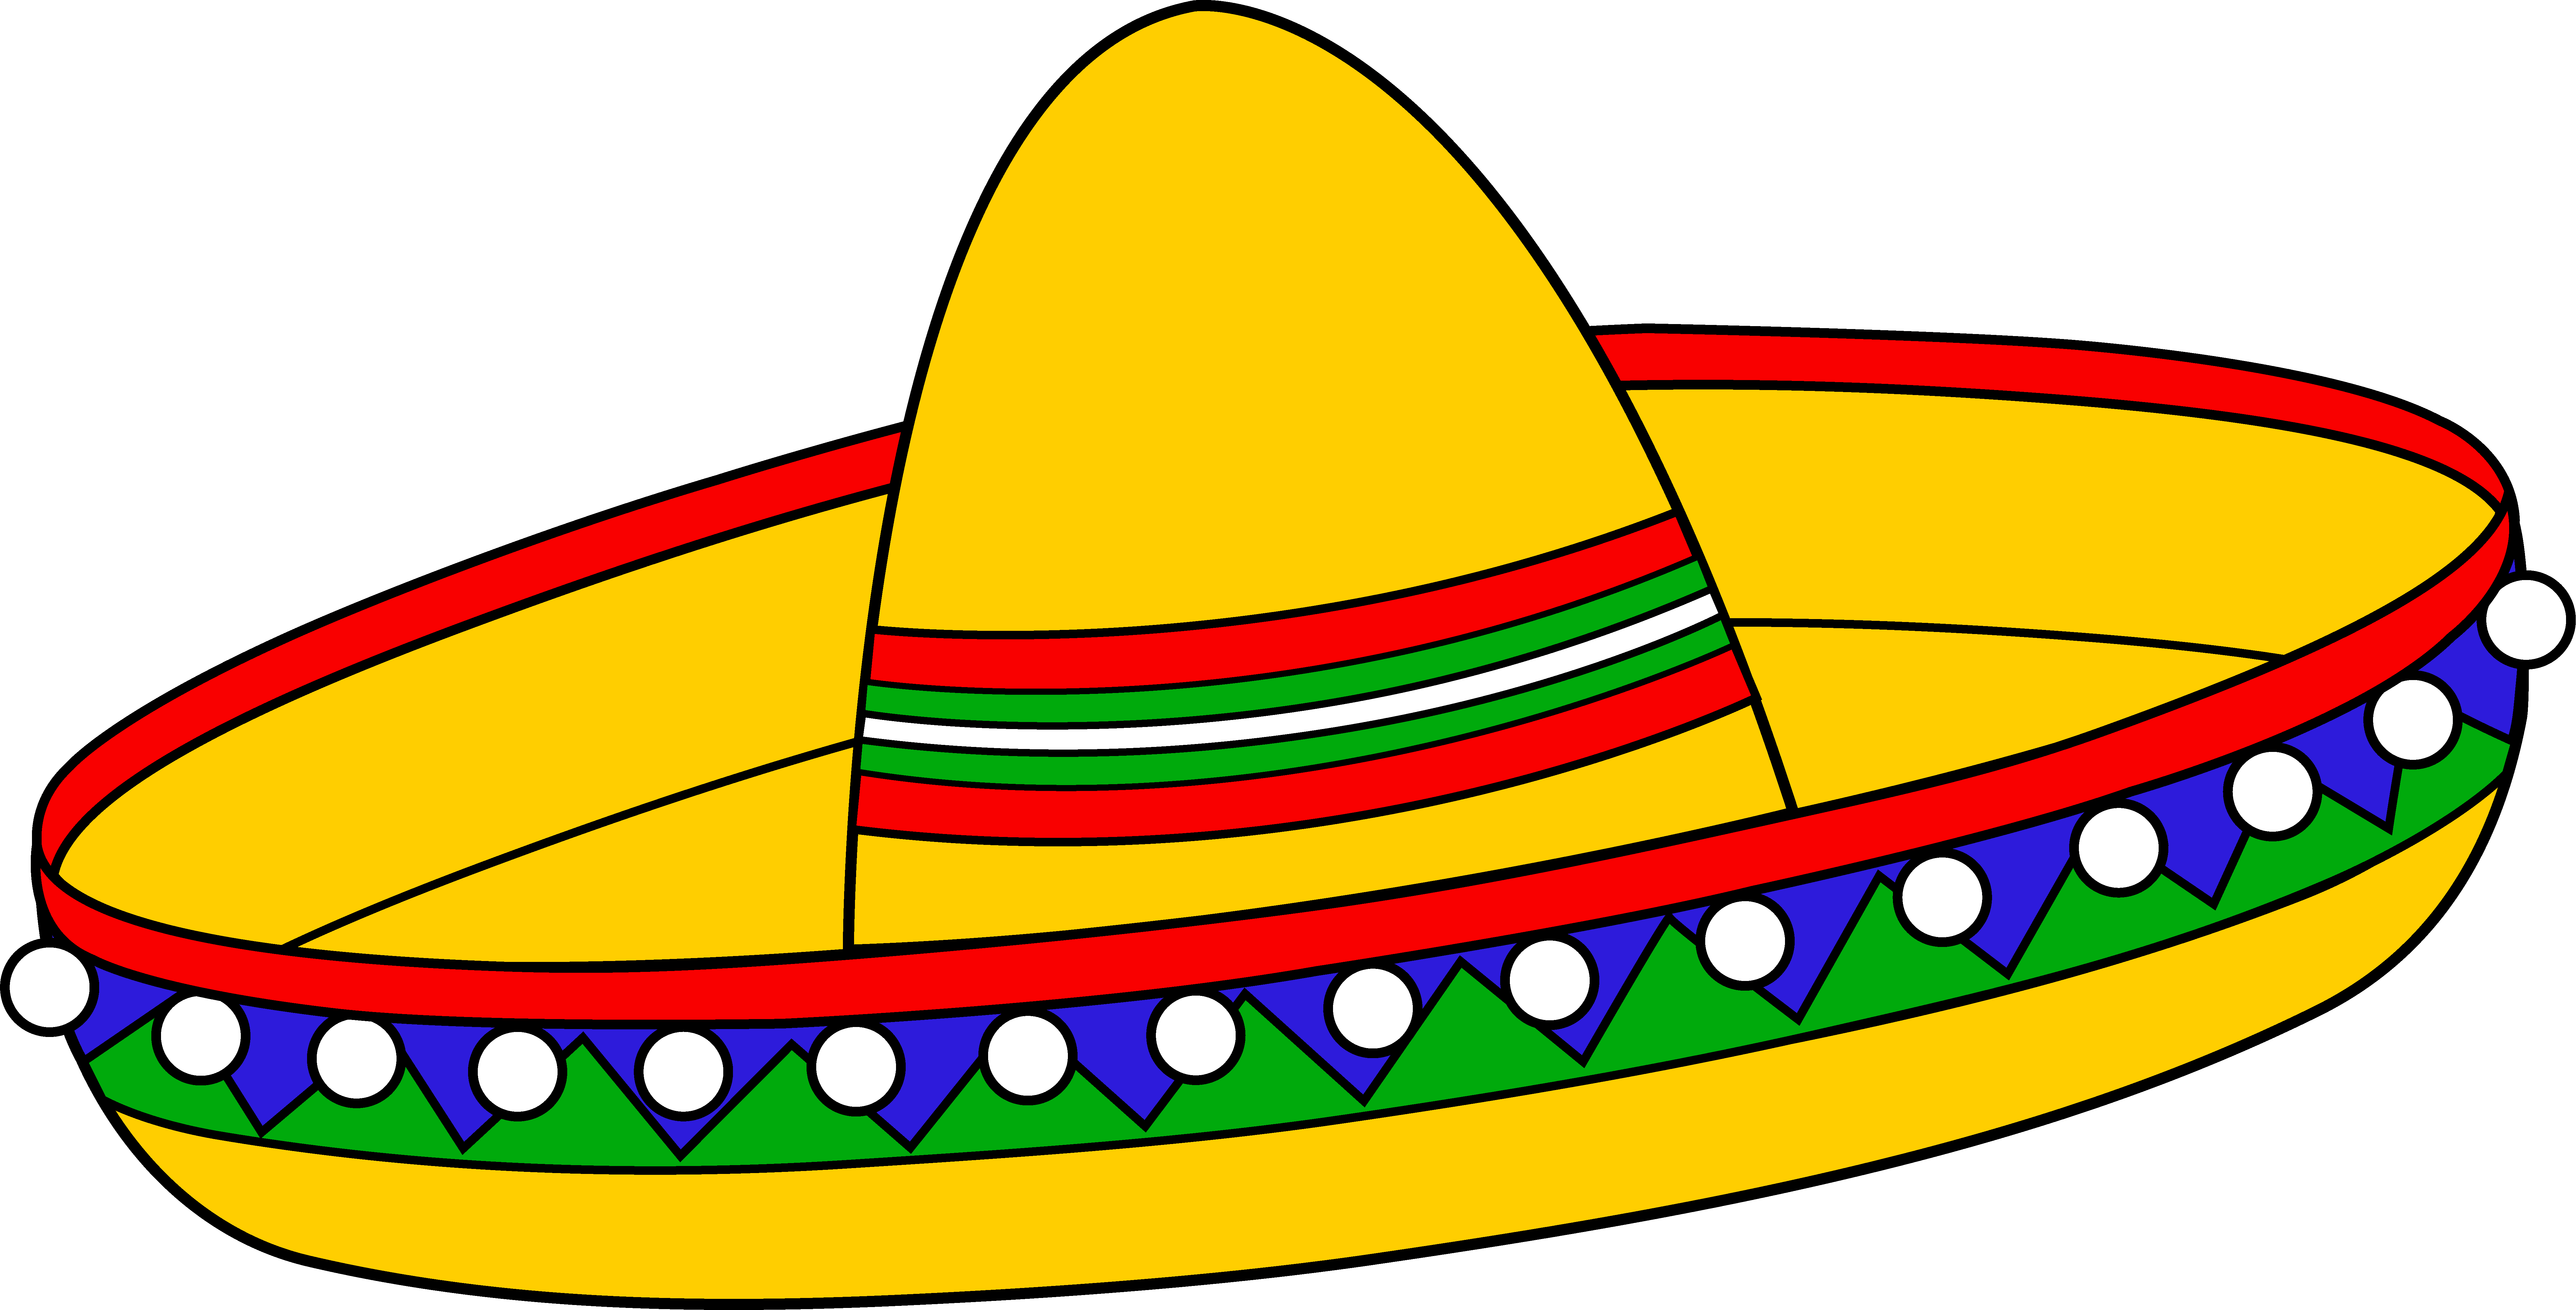 hight resolution of colorful mexican sombrero hat free clip art